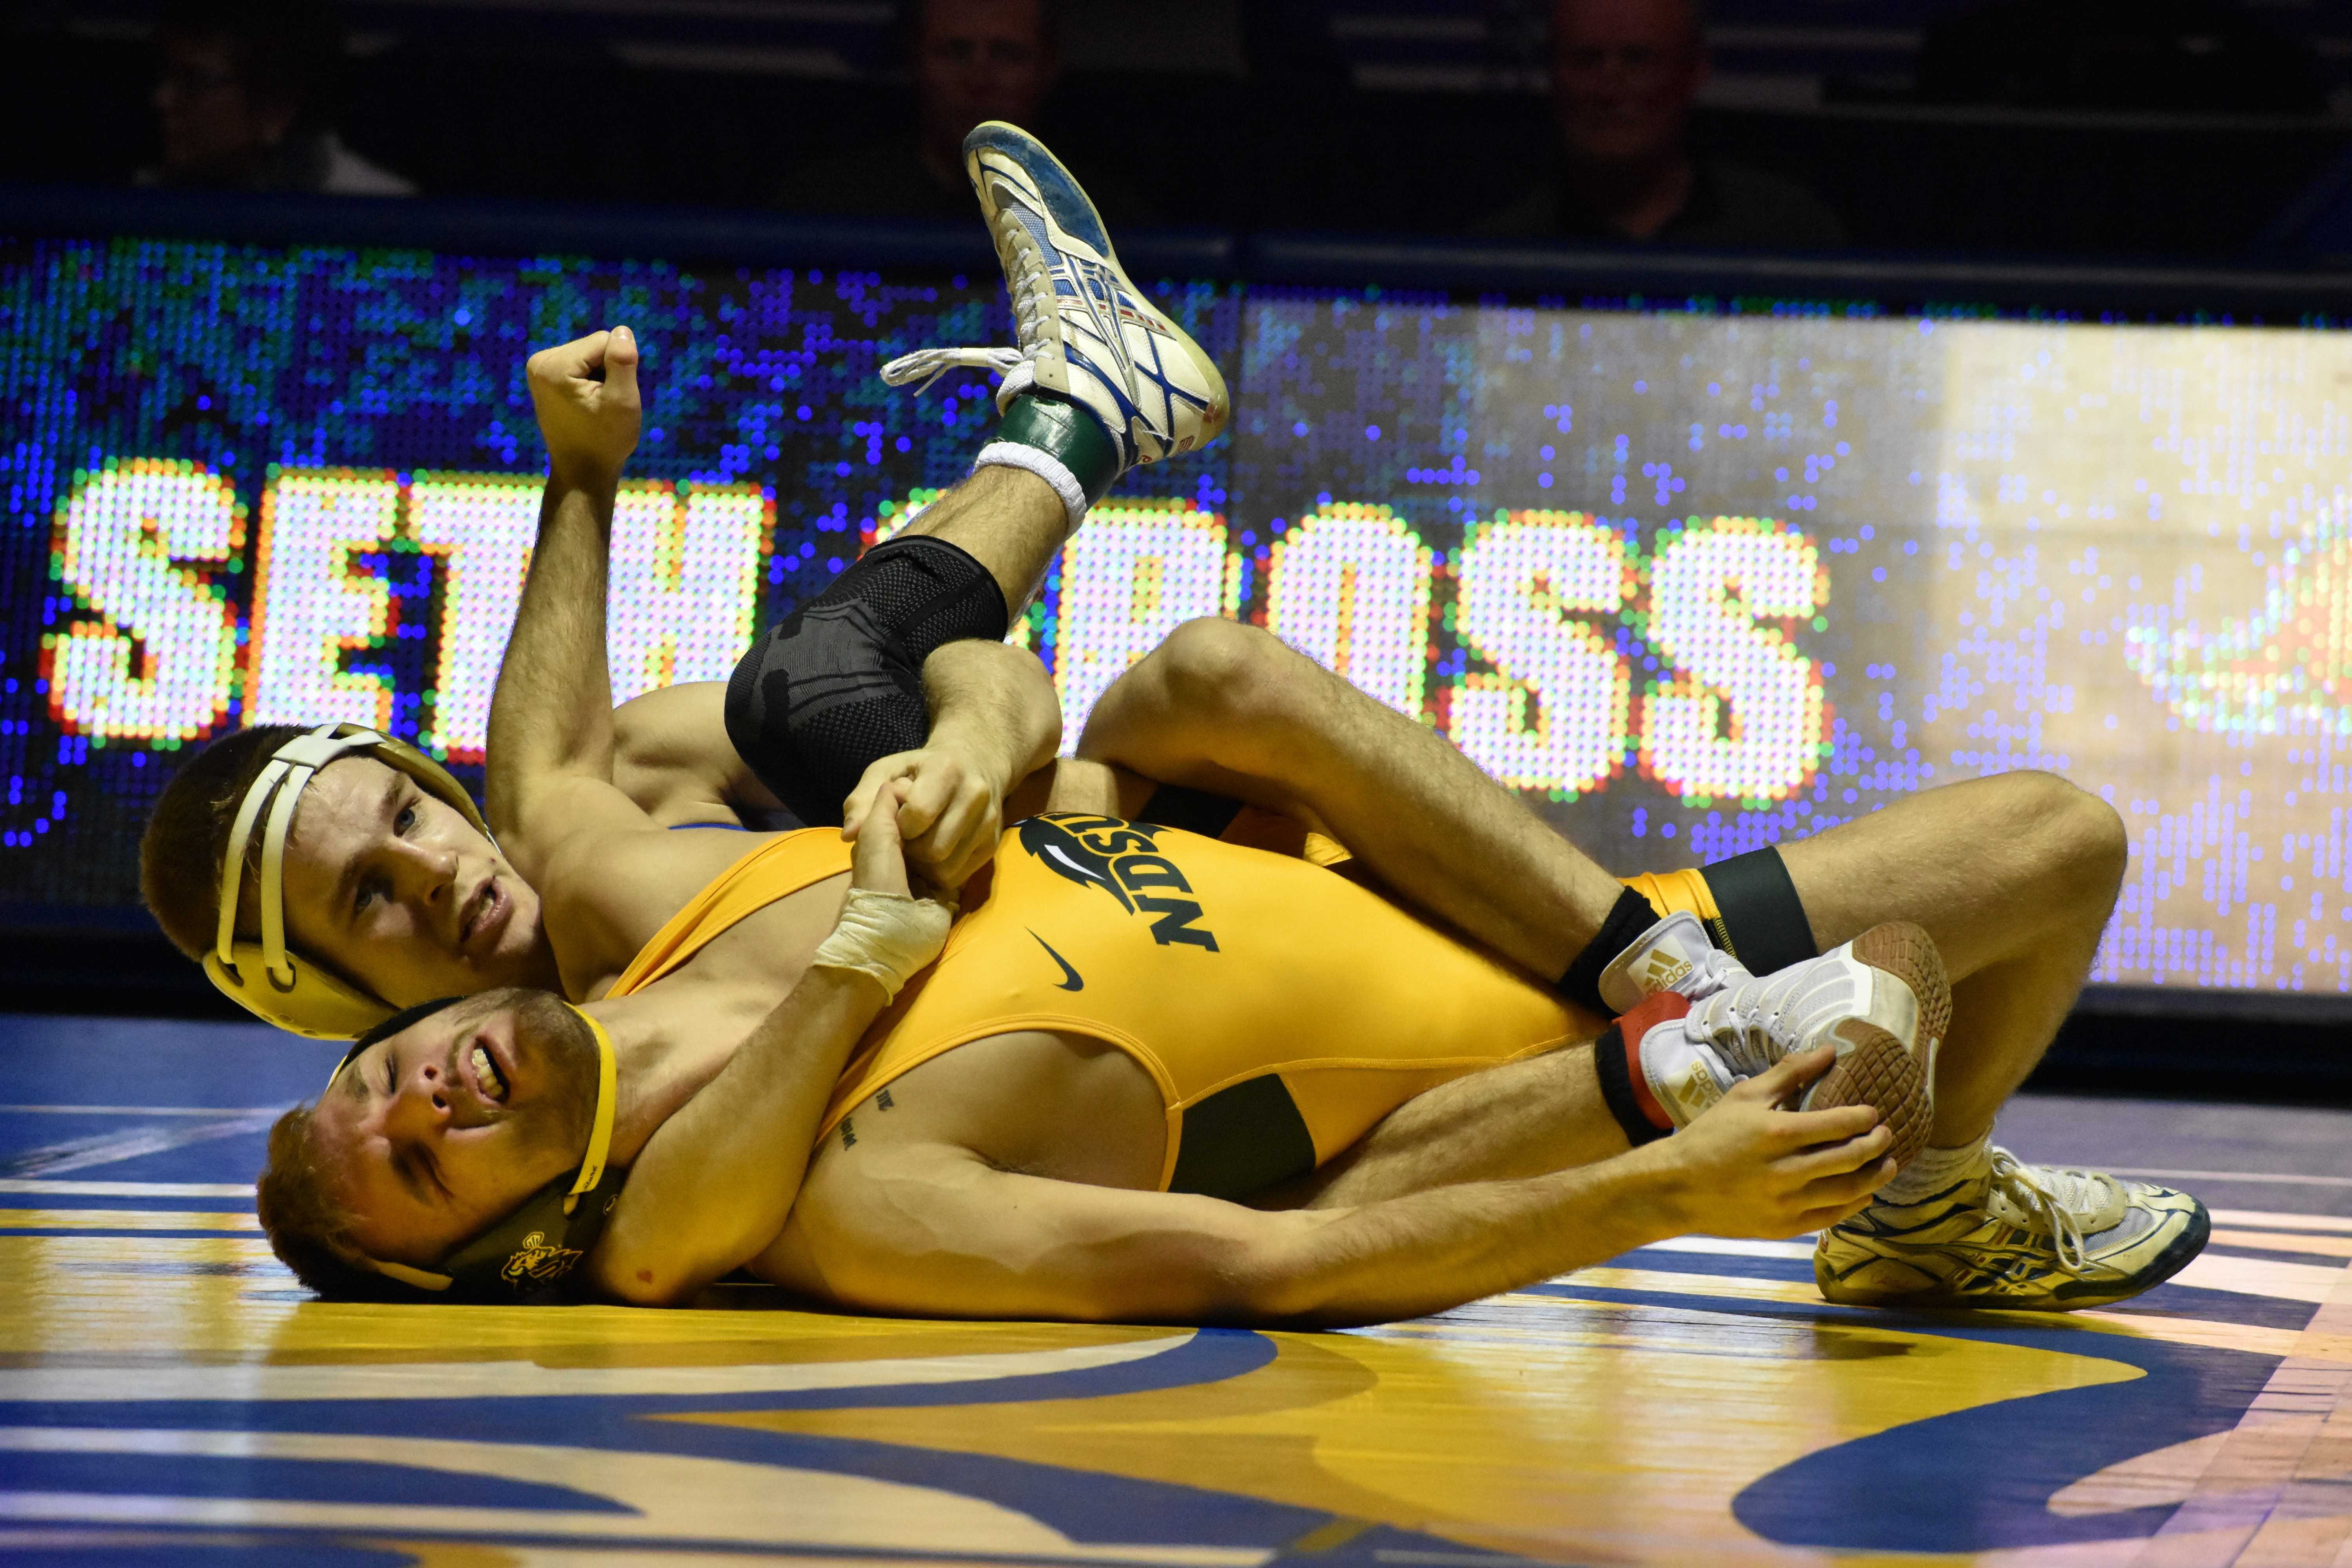 ABBY FULLENKAMP Junior Seth Gross wrestles against NDSU Cam Sykora during the 133-pound bout Feb. 16. Gross defeated Sykora by tech fall of 16-0 in four minutes. The Jacks are undefeated in the Big 12 Conference. SDSU is participating in the Big 12 Championships this weekend in Tulsa, Oklahoma. The Jacks finished the season 8-0 against Big 12 opponents.